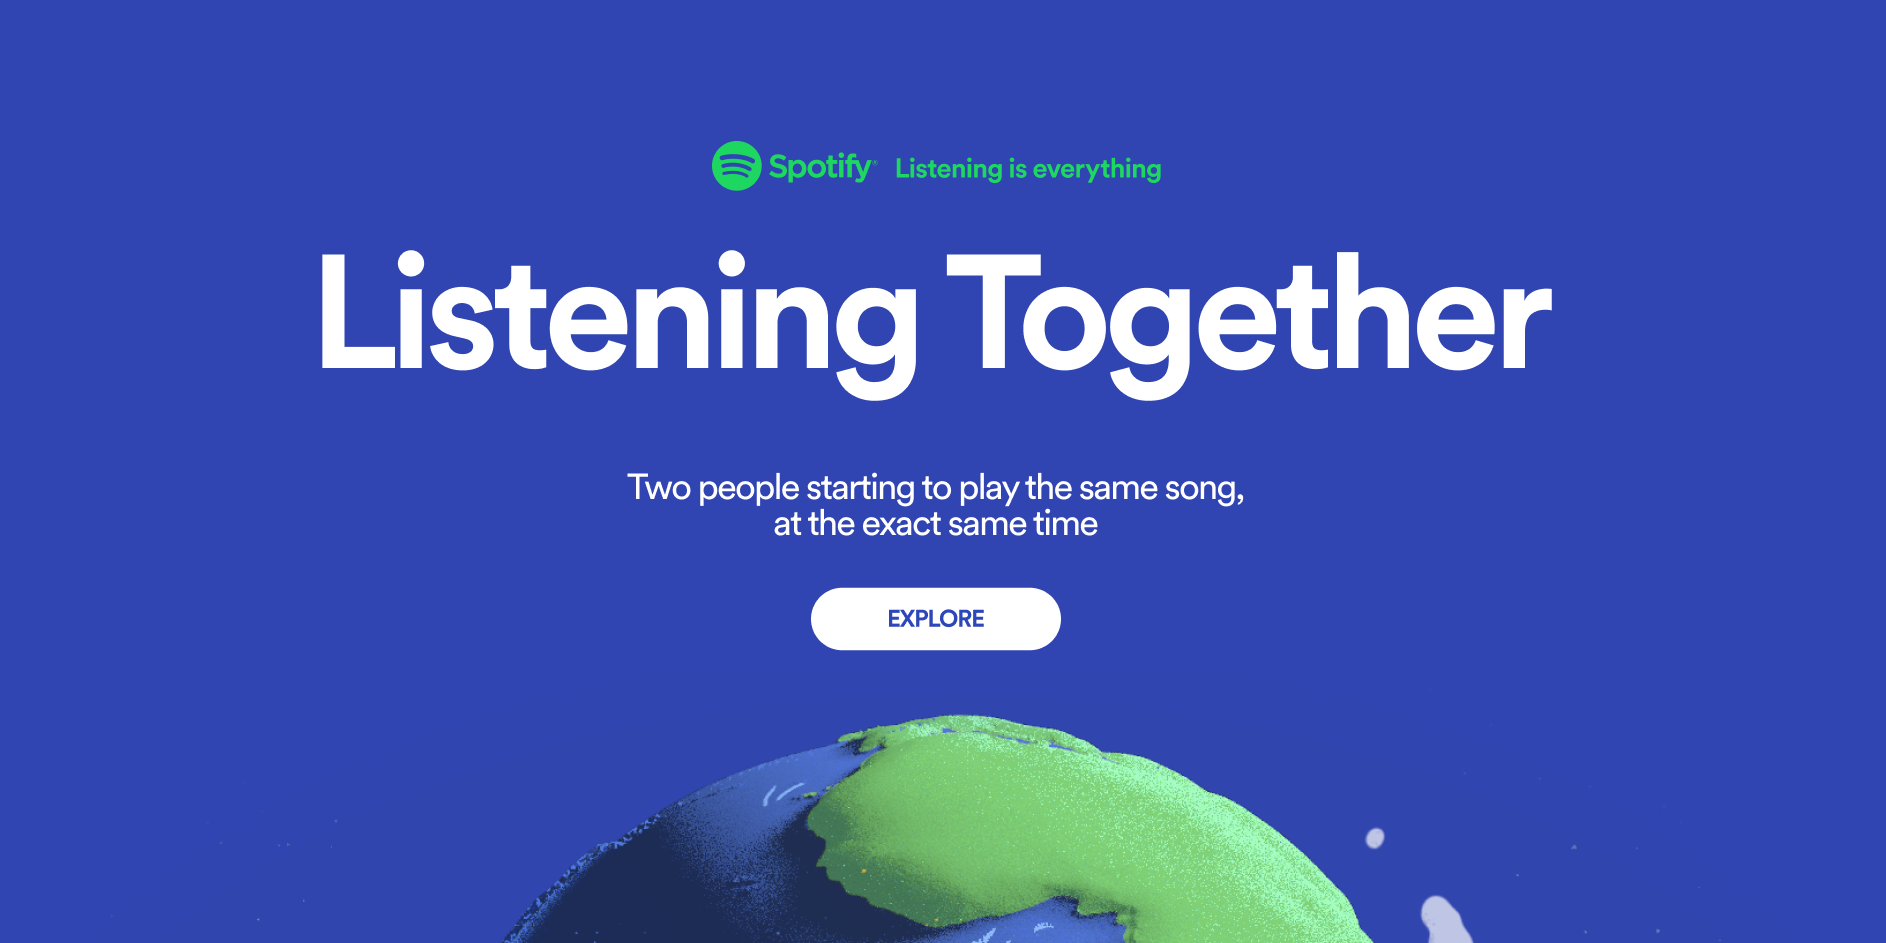 Watch two musical soulmates connect from across the world with Spotify's Listening Together